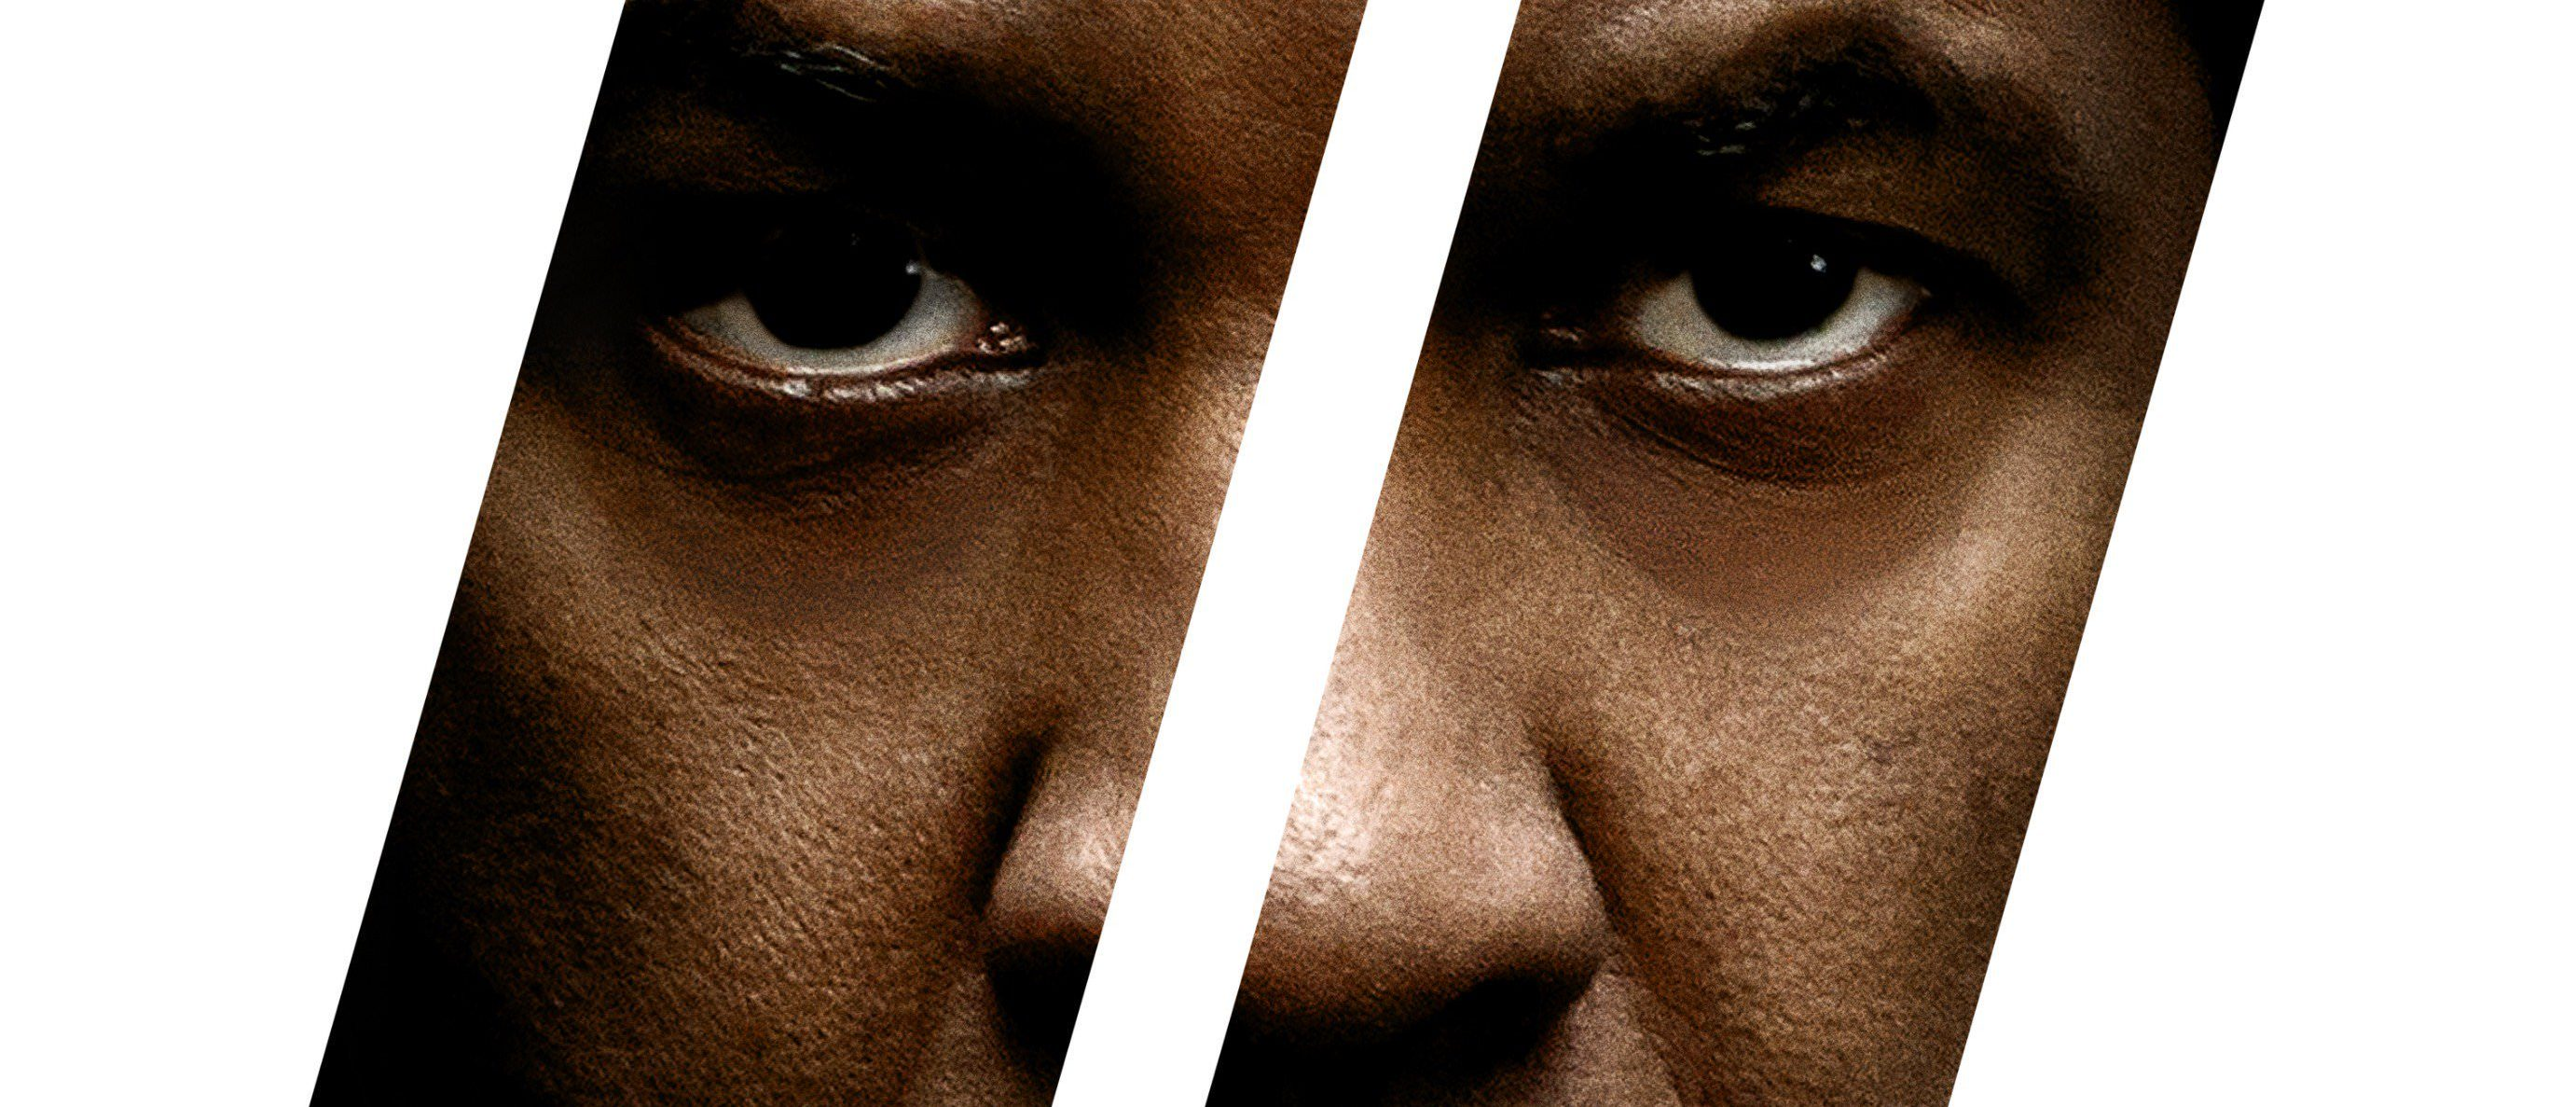 The Equalizer 2: Denzel Washington Is Back Kicking Serious Butt In